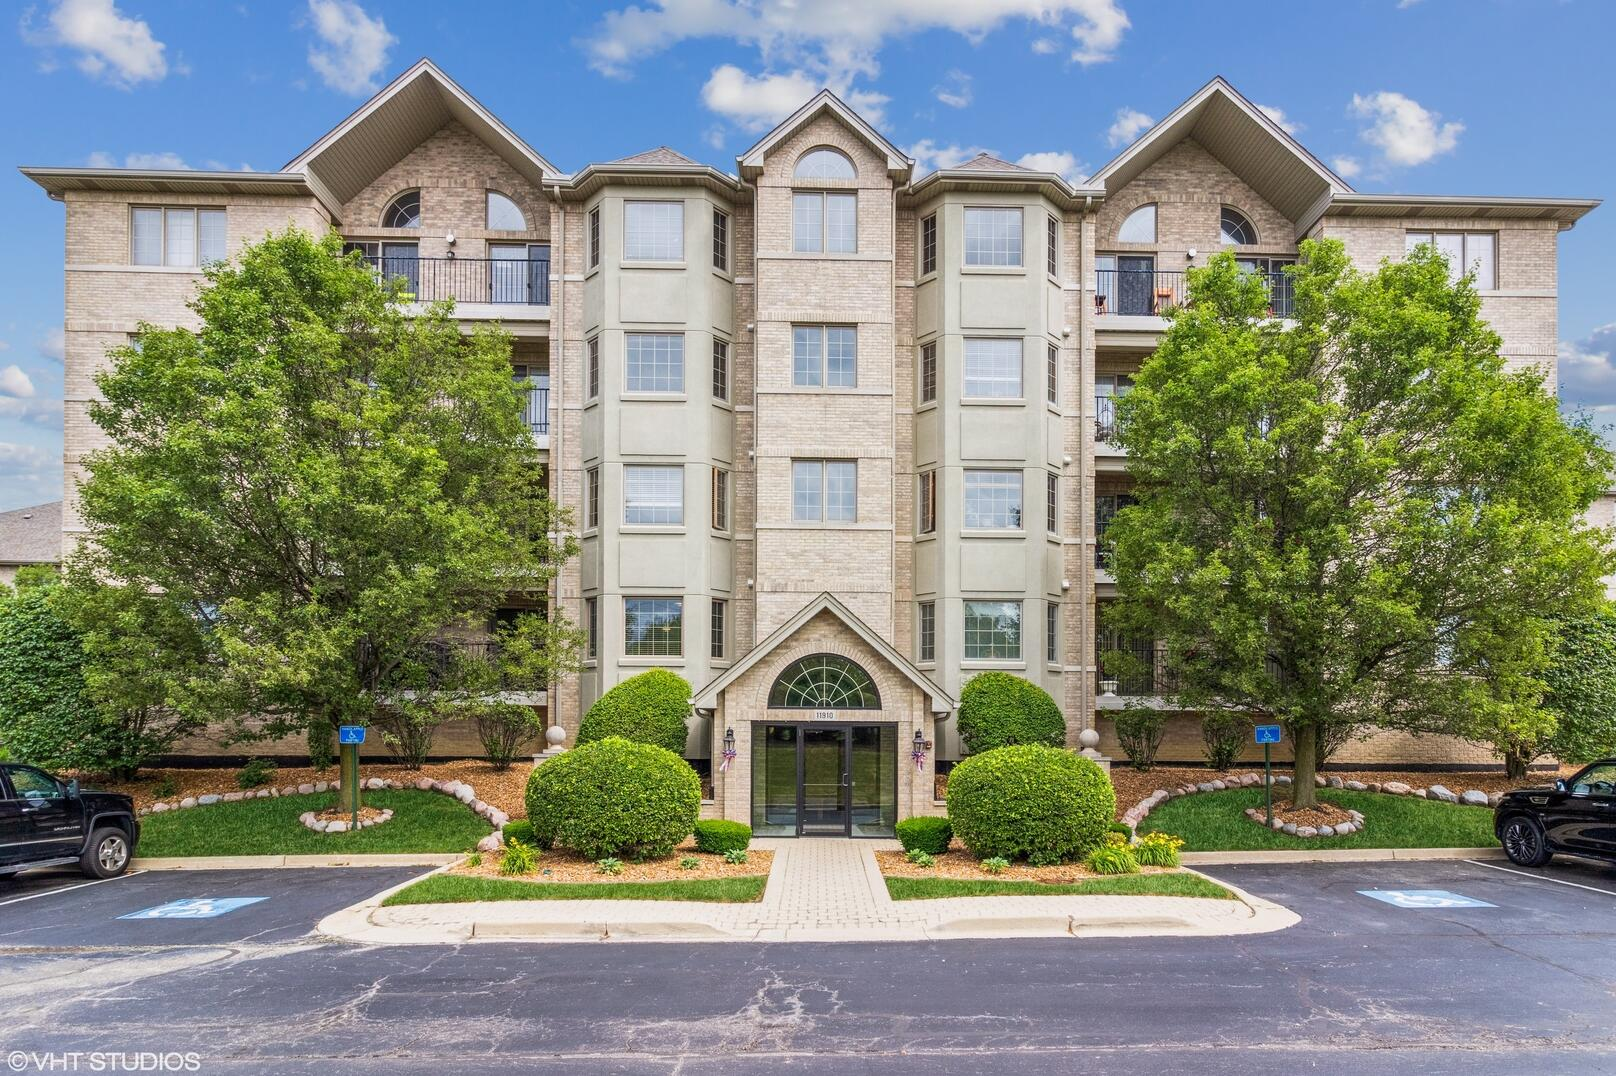 Photo of 11910 Windemere Orland Park IL 60467